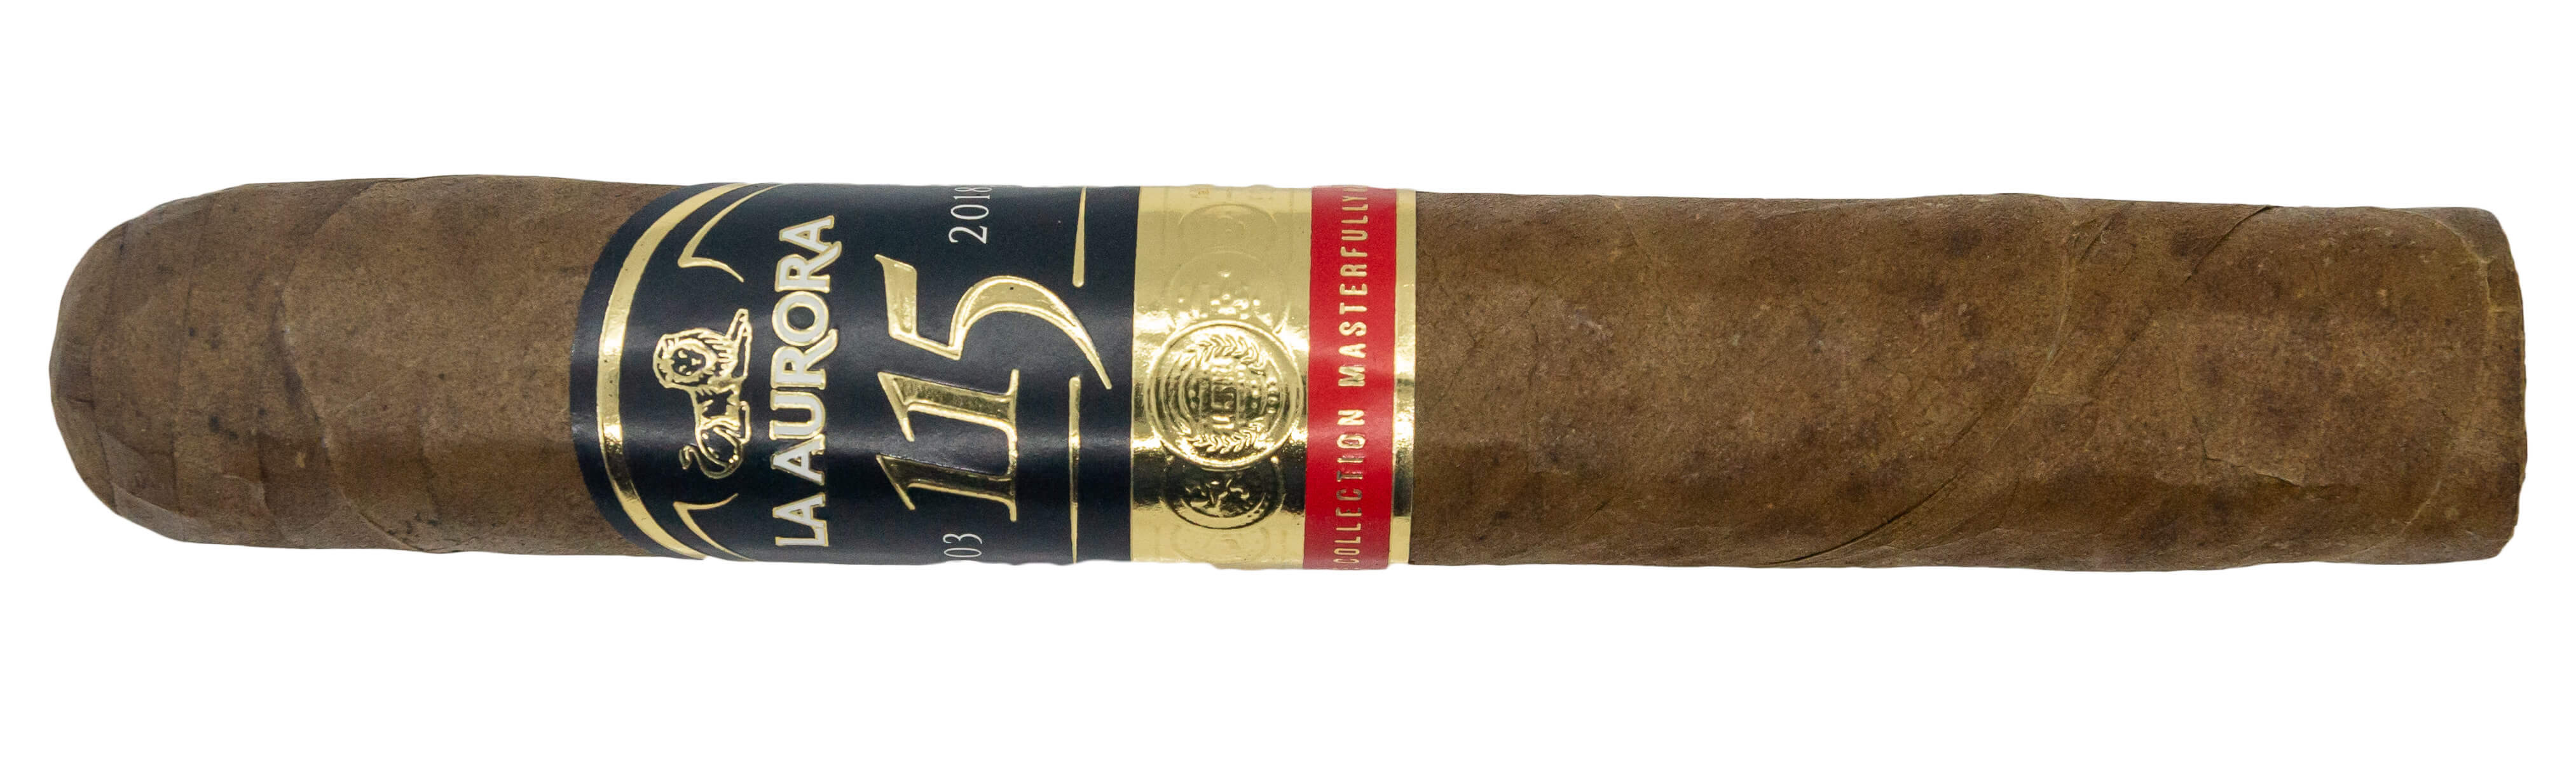 Blind Cigar Review: La Aurora | 115th Anniversary Robusto